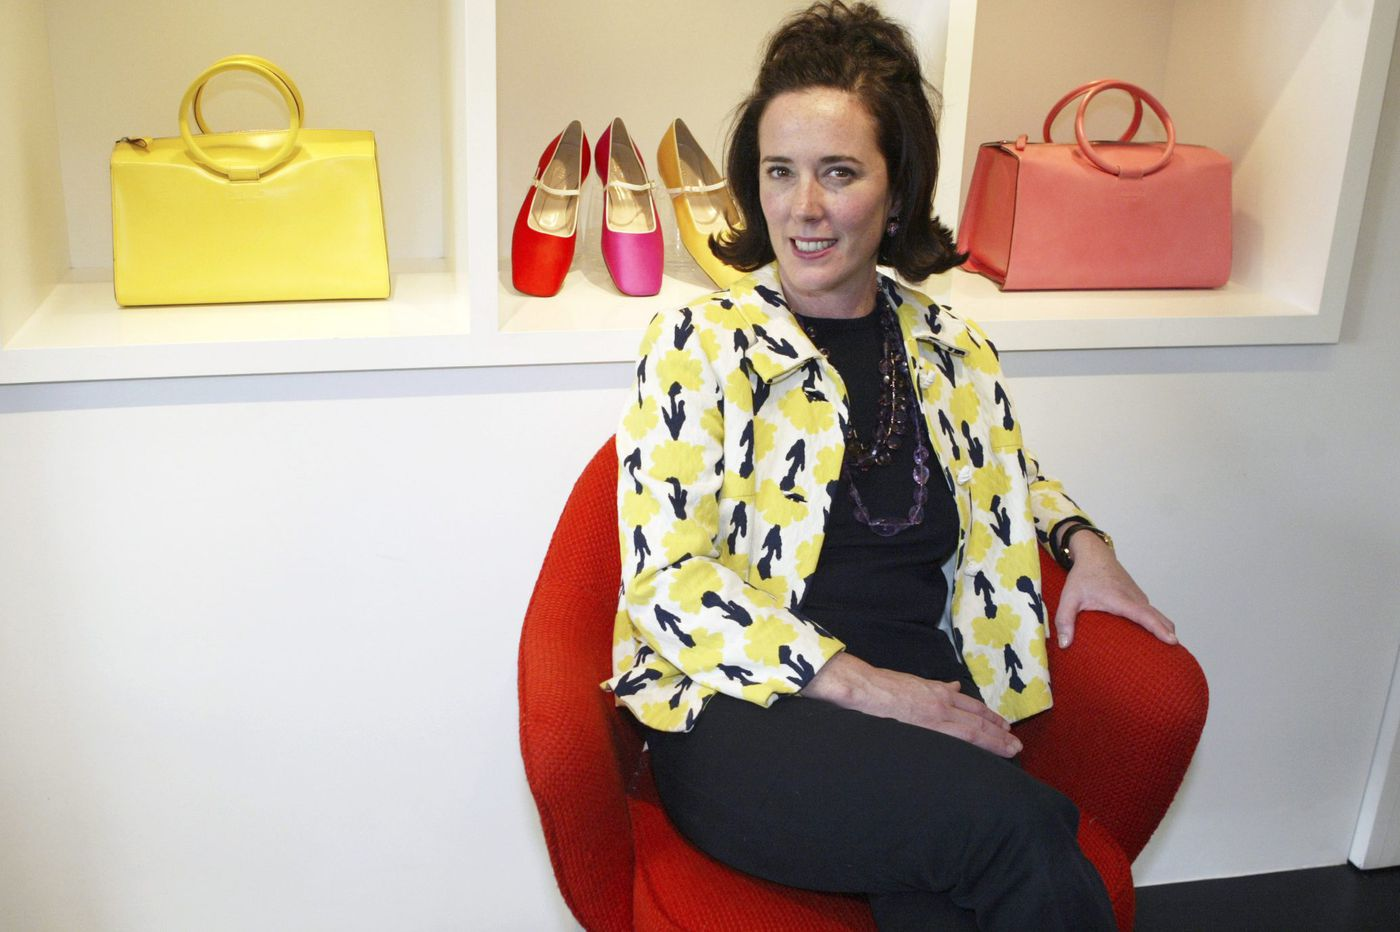 Kate Spade's suicide: Another example of how the media fails people with mental health issues | Perspective